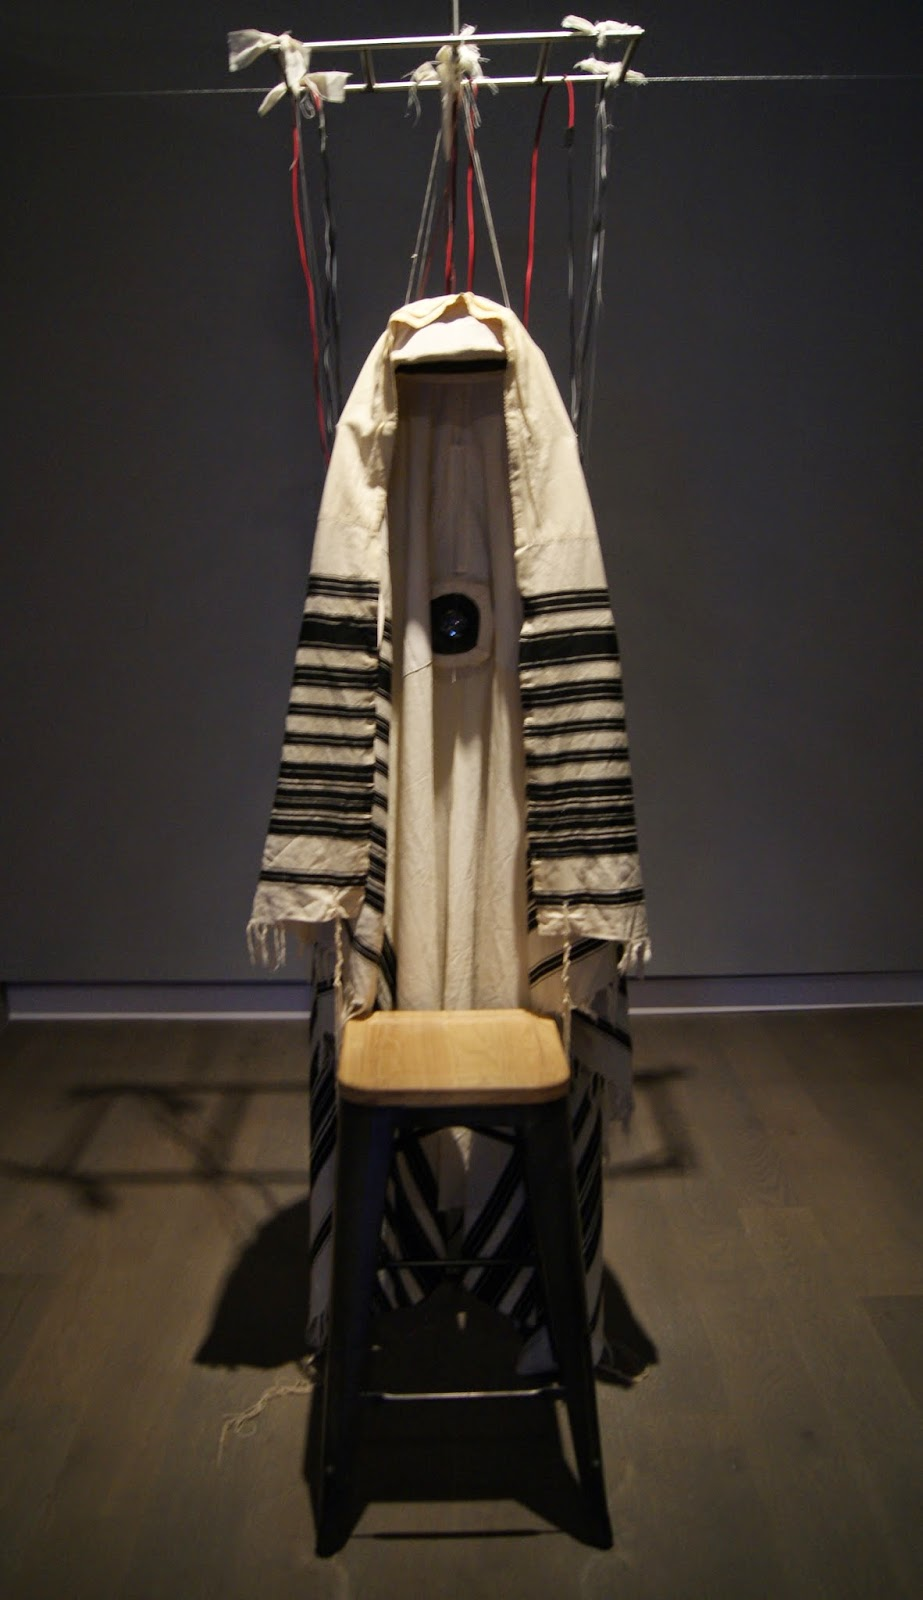 PARDES sound and multimedia art exhibit at Koffler Gallery in Toronto, culture Artscape, Youngplace, Gallery, Exhibition, Ontario, Canada, Israel, Israeli, artists, orchard, hebrew,  the purple scarf, melanie.ps, art, artmatters, drone, prayer, shawl, Soundtallit, 2014, Amnon Wolman